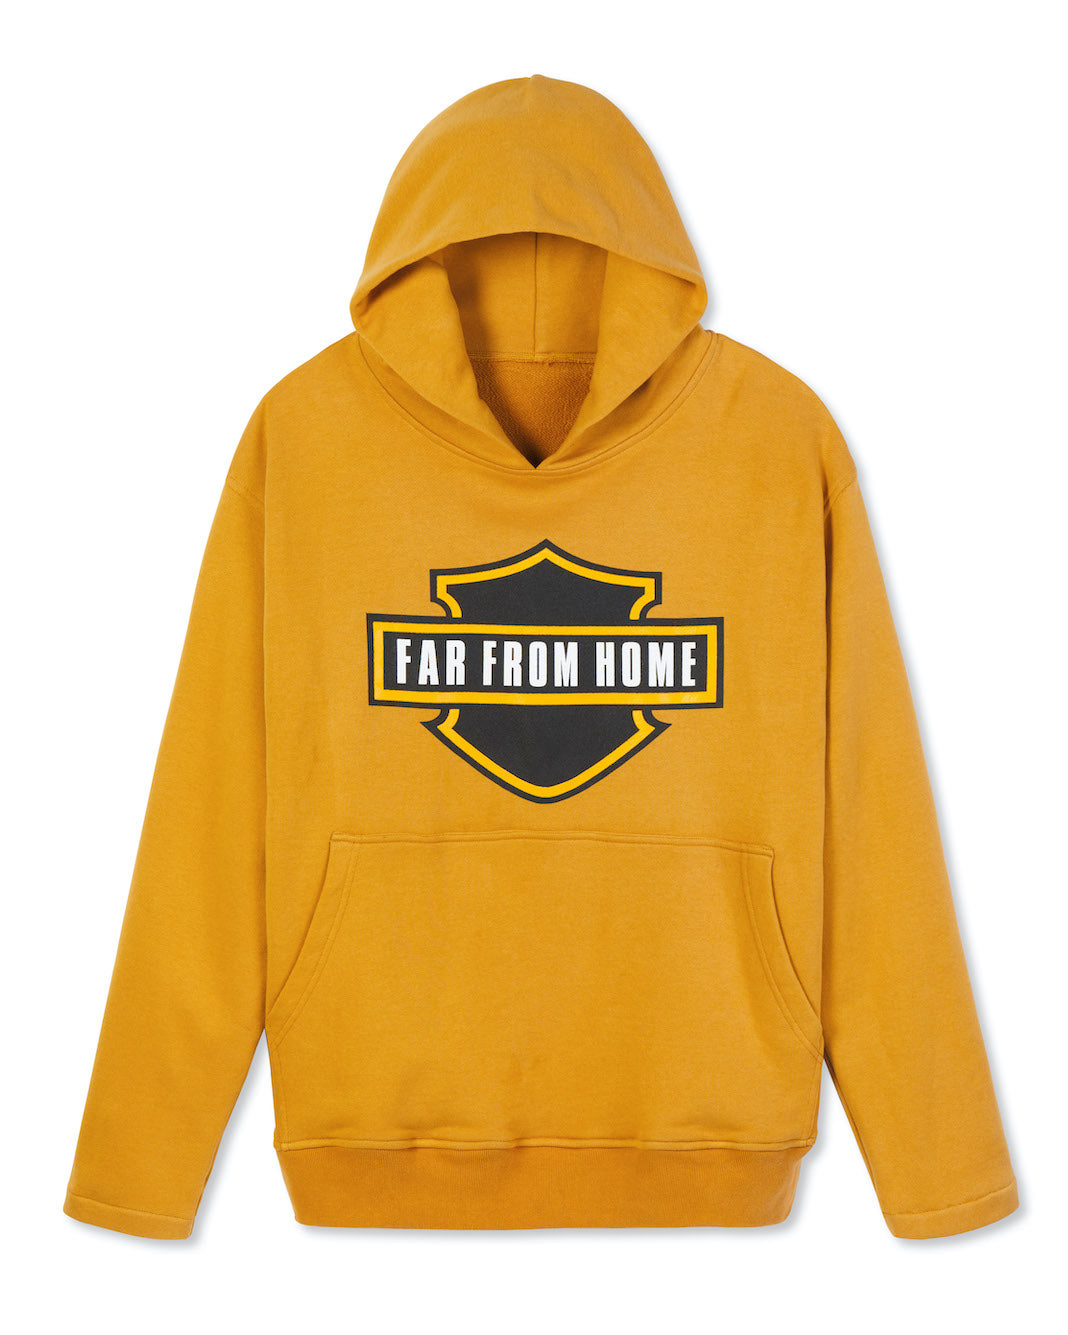 'FAR FROM HOME' HOODED SWEATSHIRT